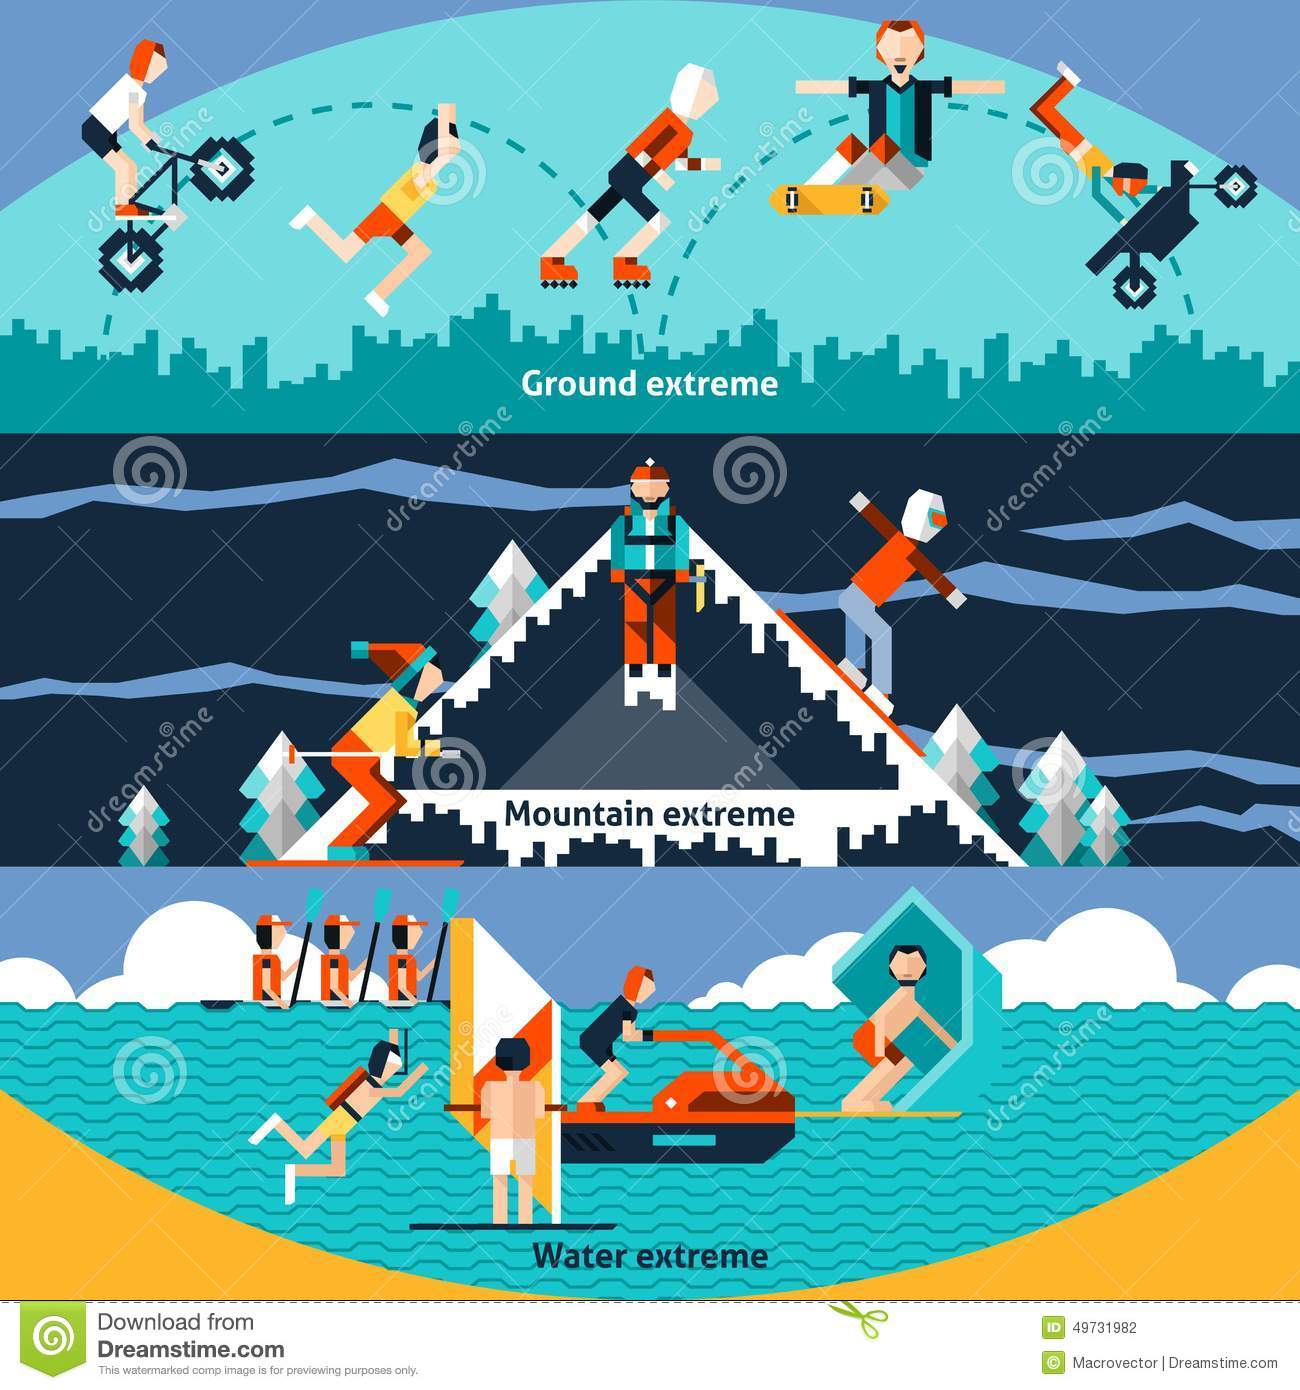 Extreme Sports: Extreme Sports Banners Vector Illustration